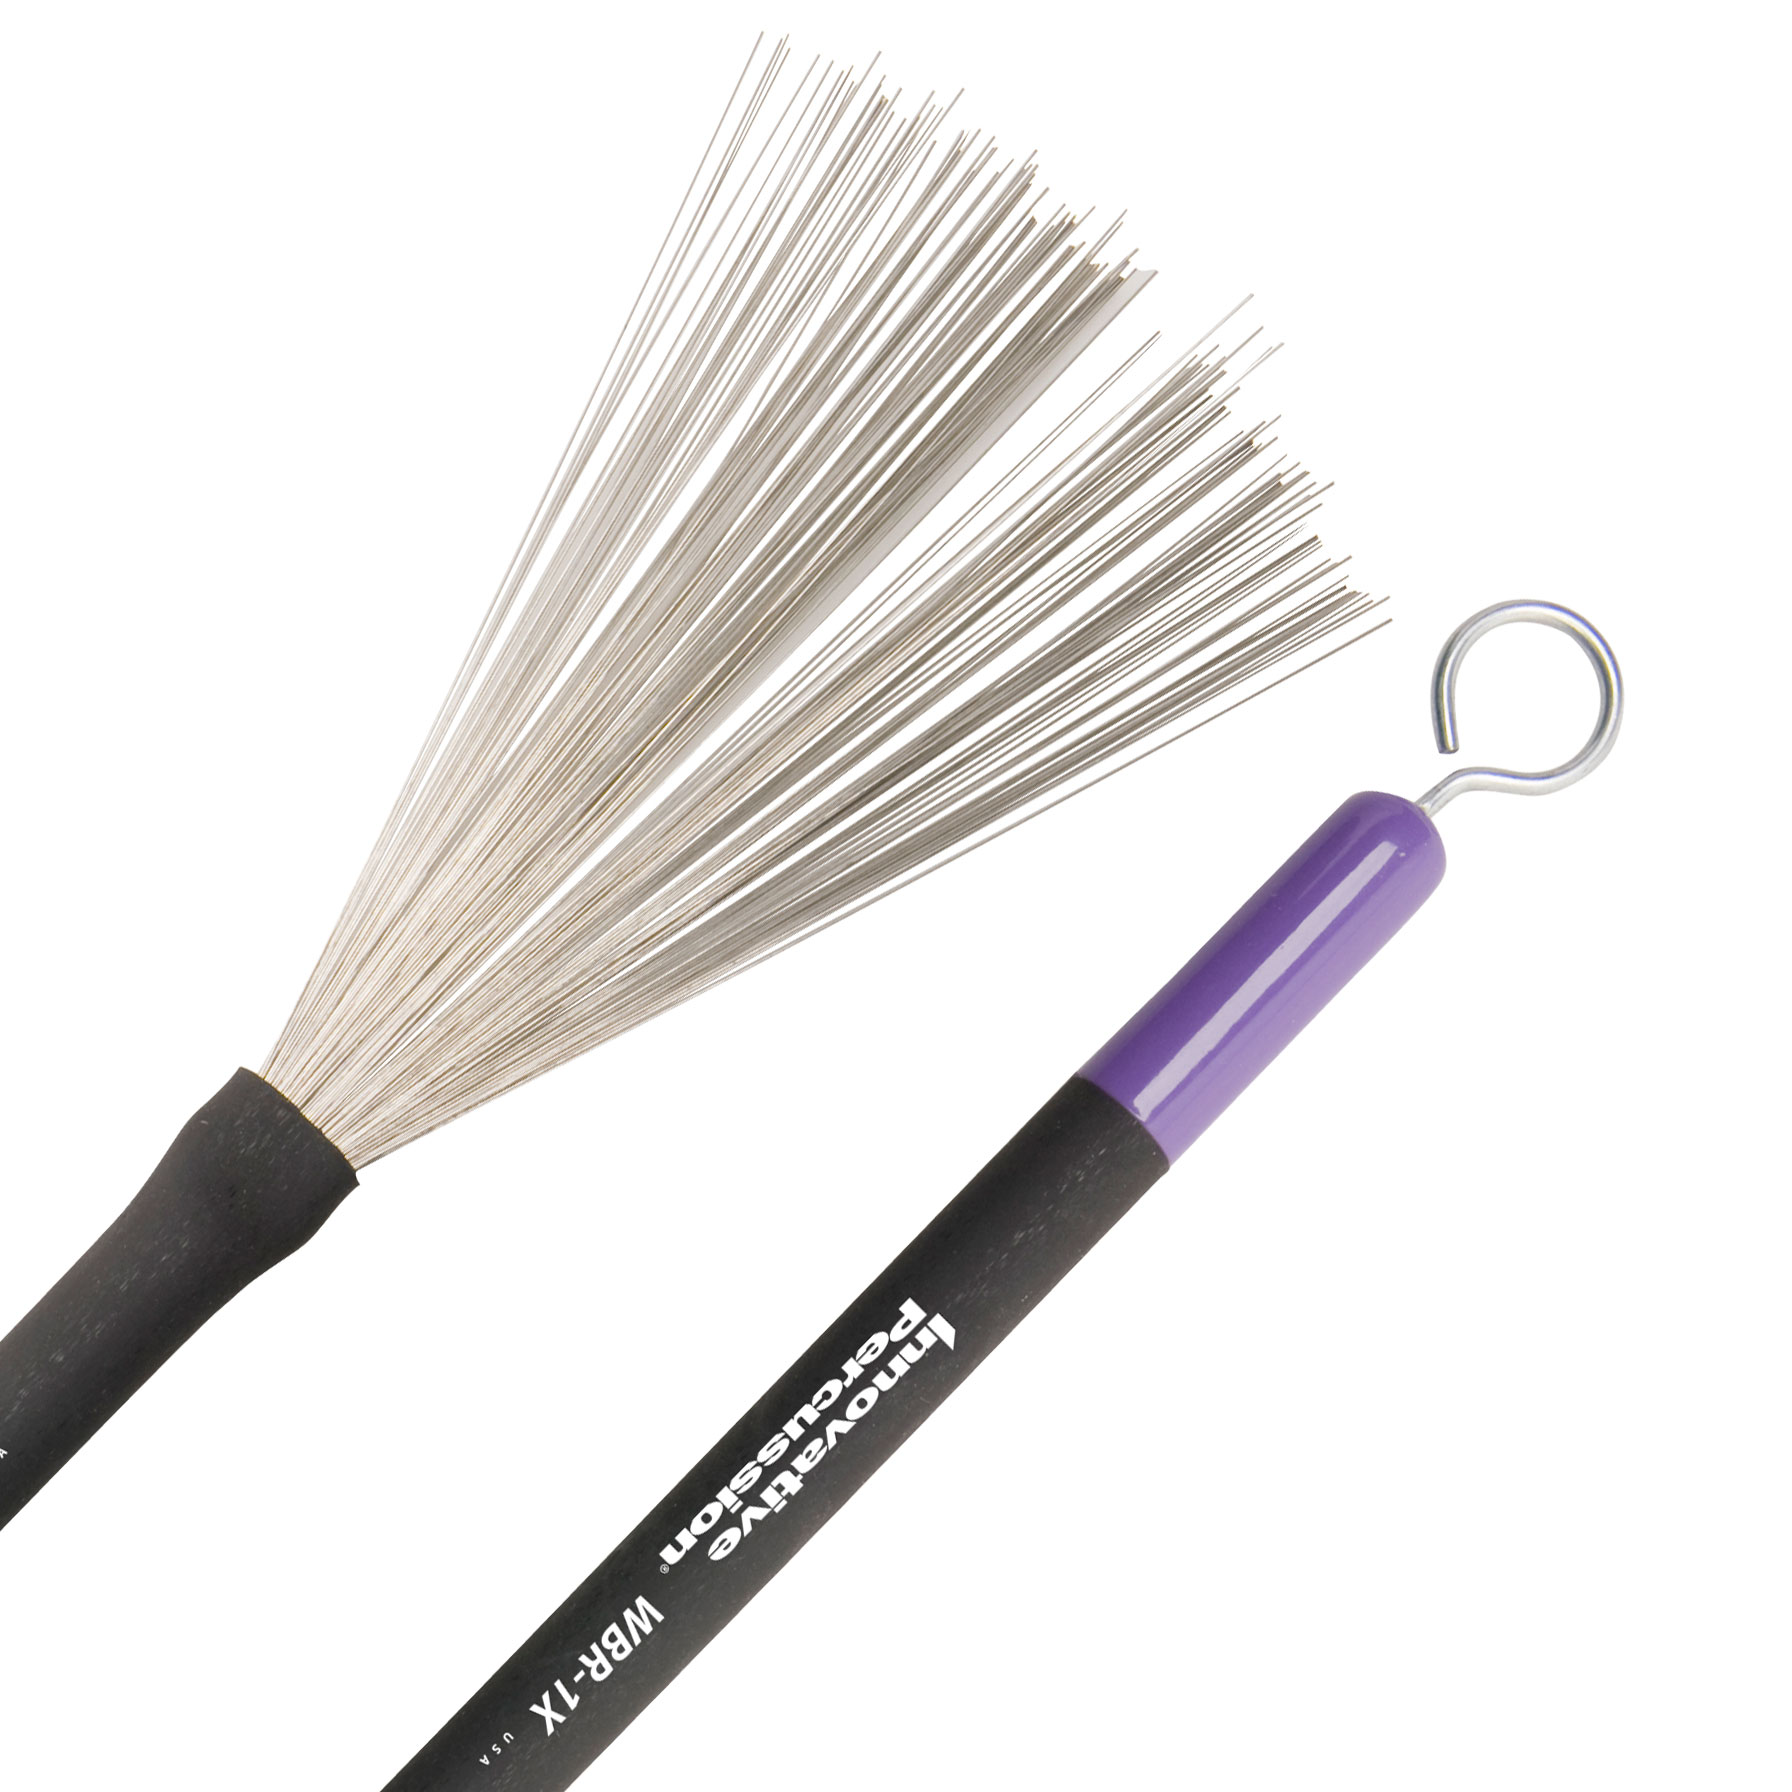 Innovative Percussion Medium Retractable Wire Brushes with Pull Rods